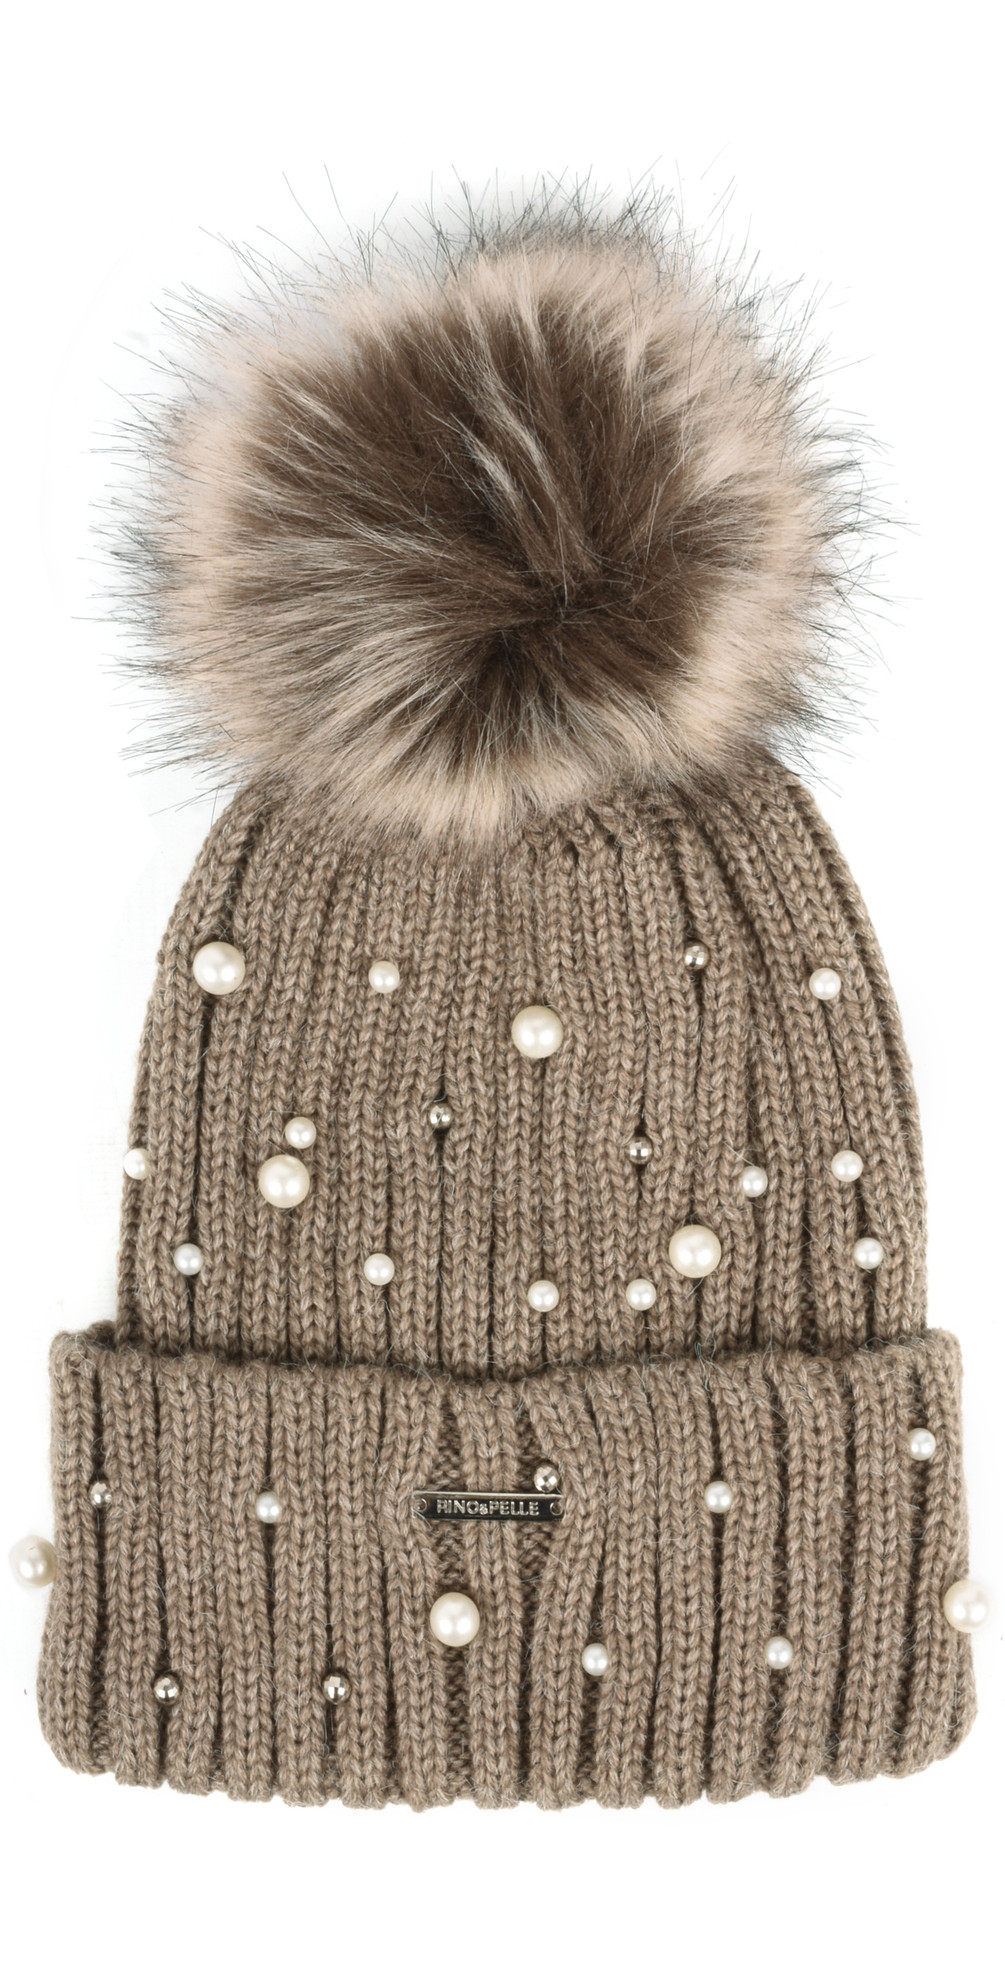 Bobble Hats with Pearls main image